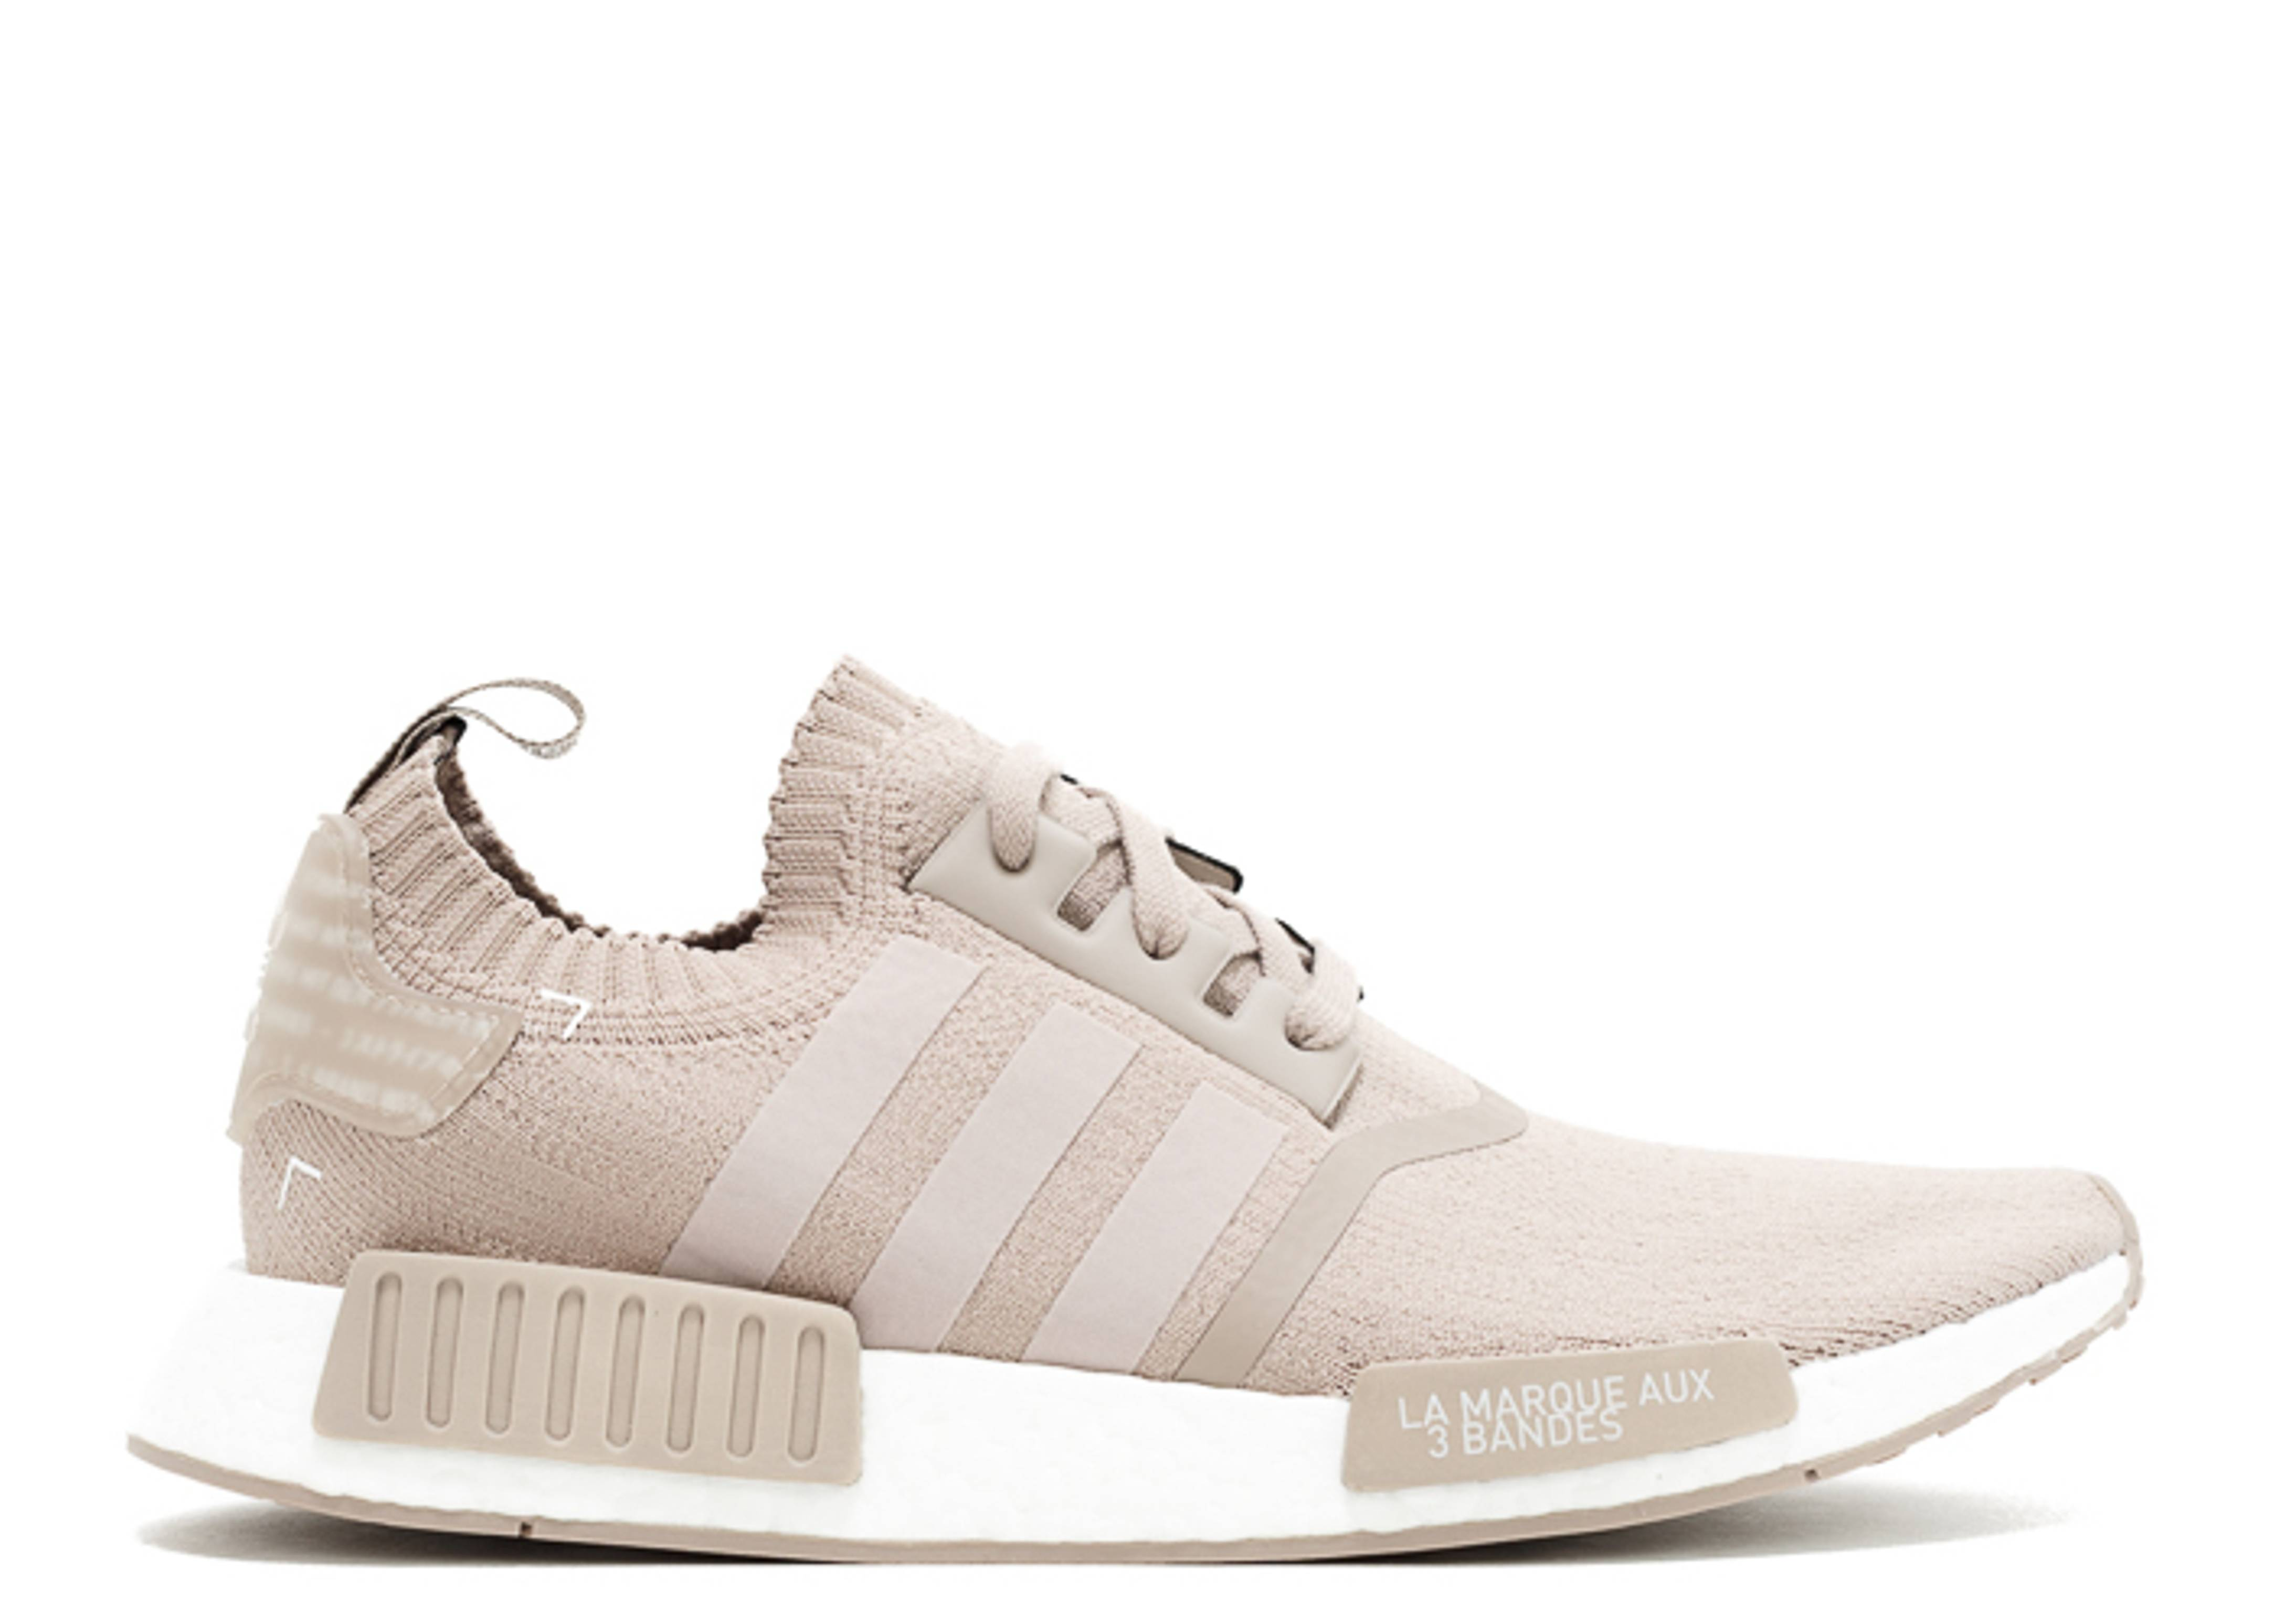 Cheap Adidas Women NMD R2 Primeknit W pink wonder pink core black Bait